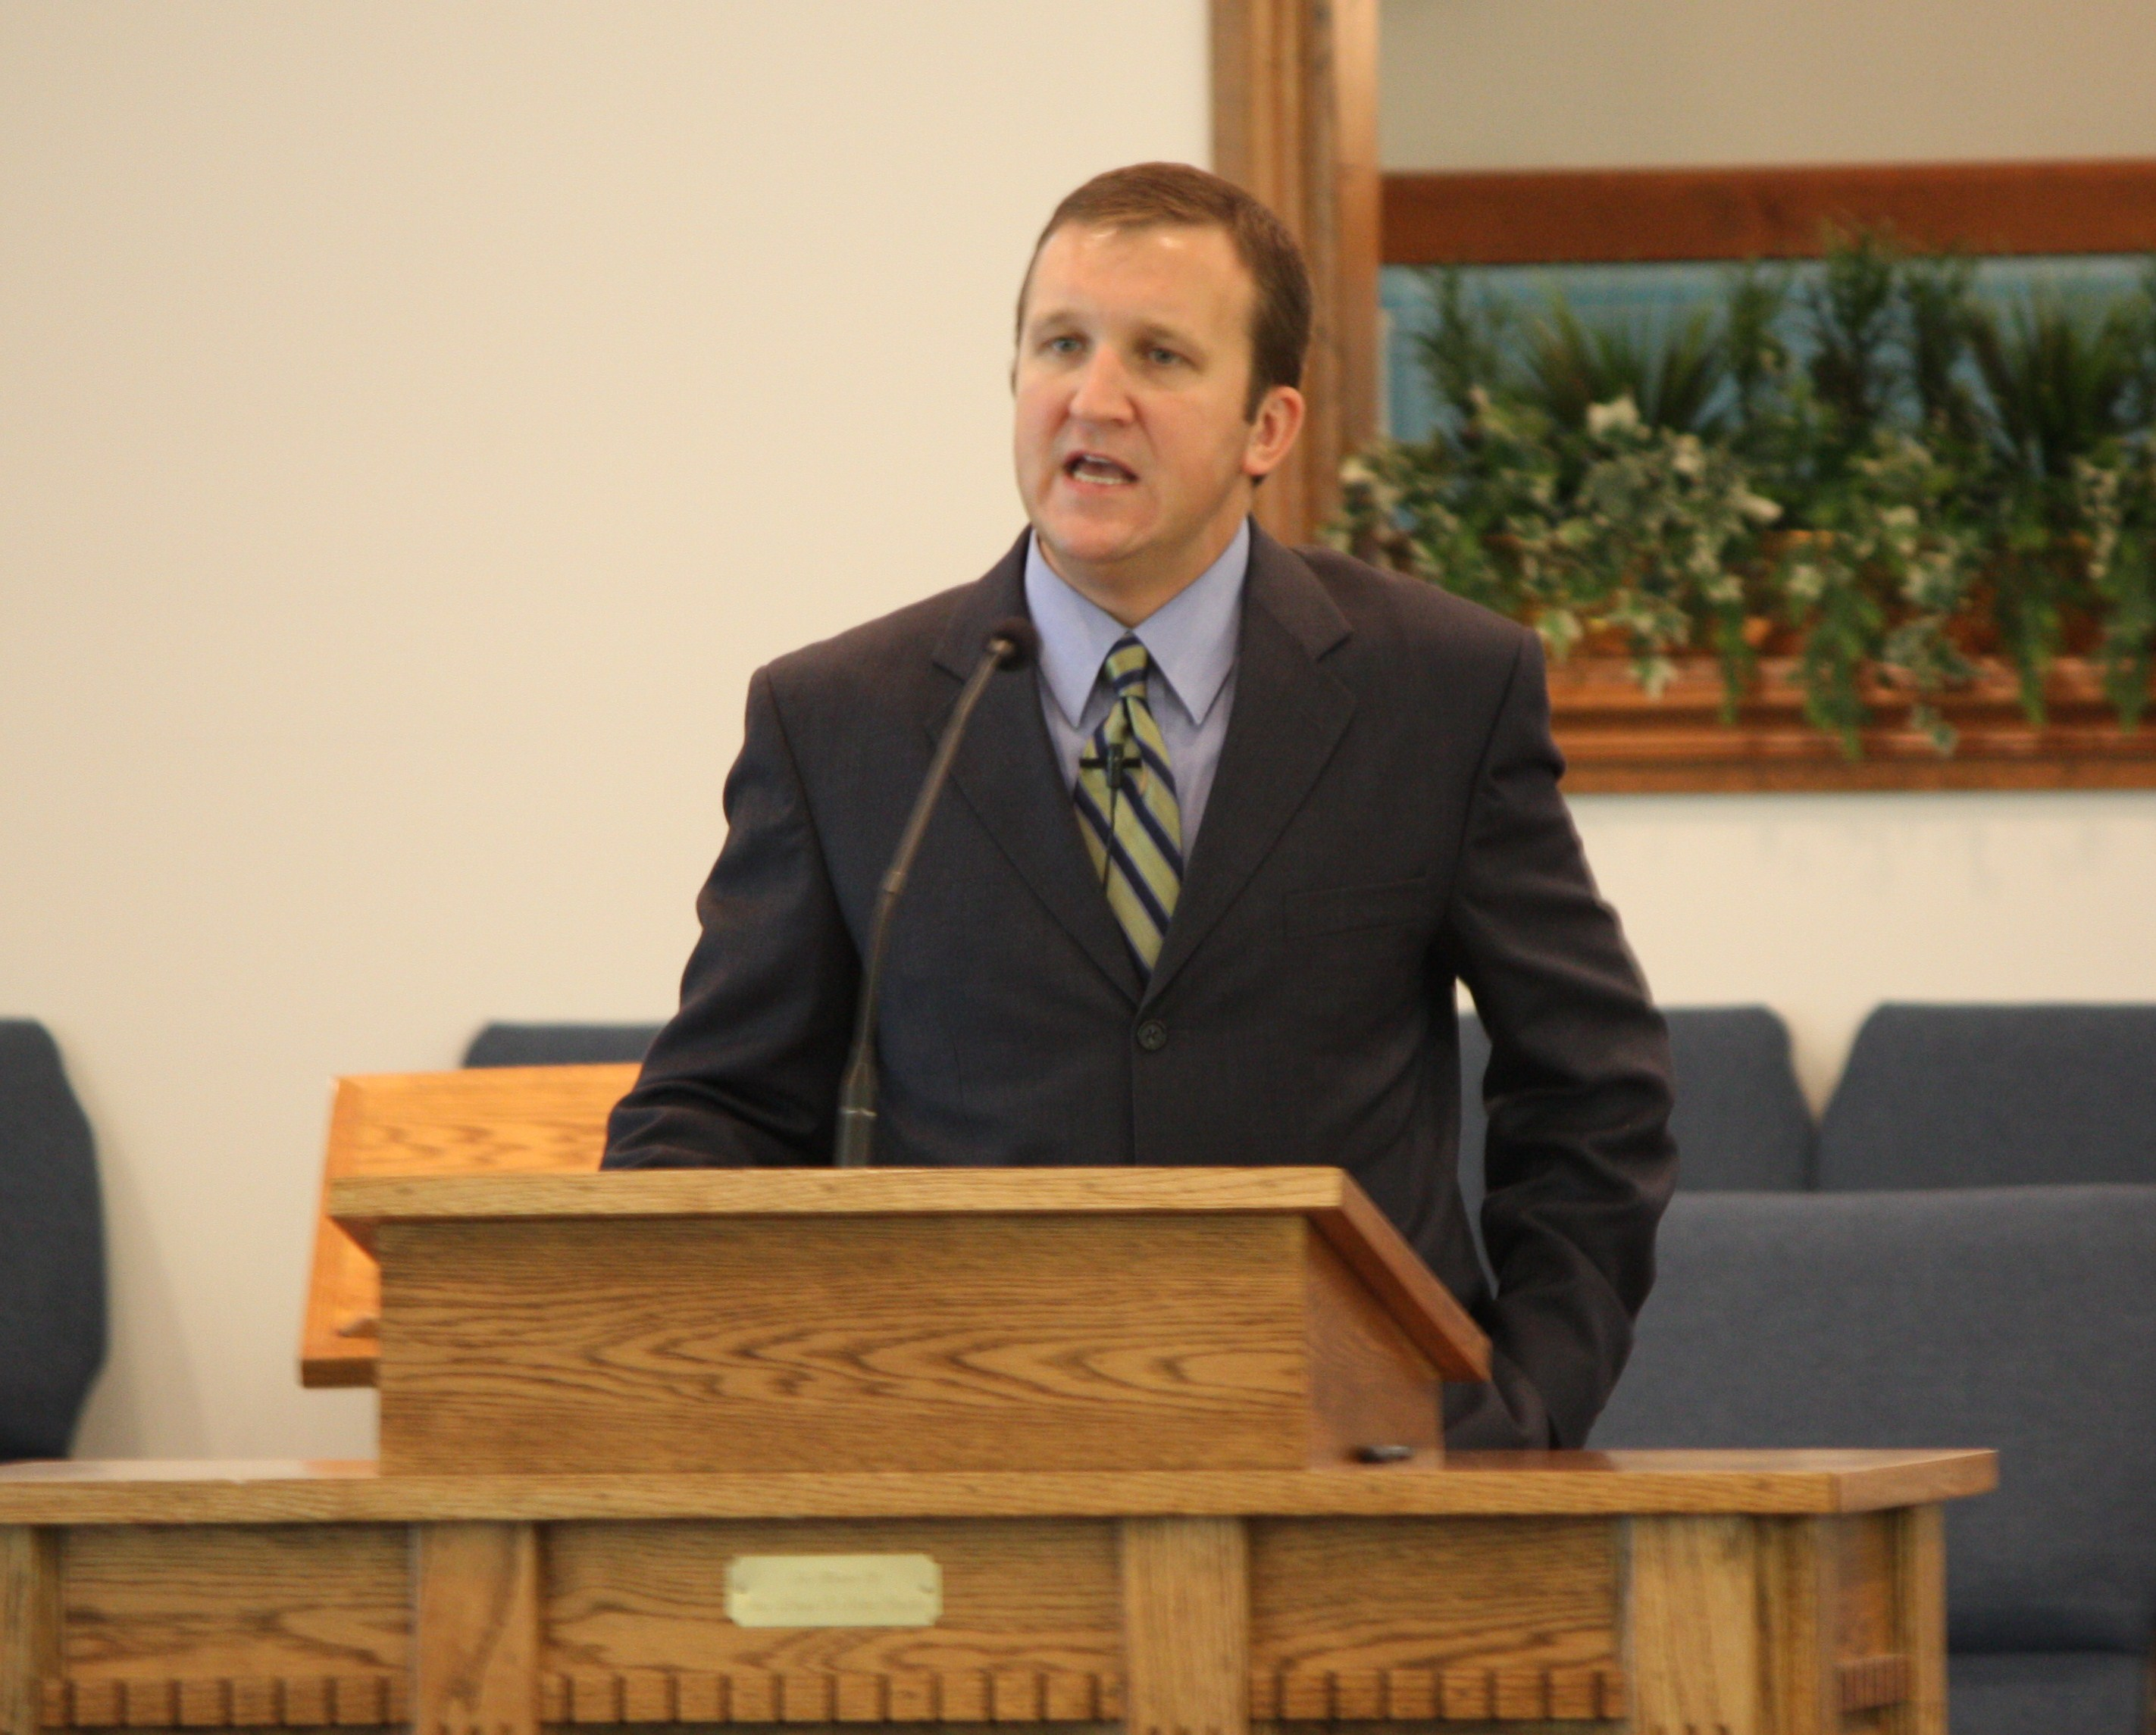 Bro. Terry Trivette is the pastor of the Sharon Heights Baptist Church in Birmingham, AL.